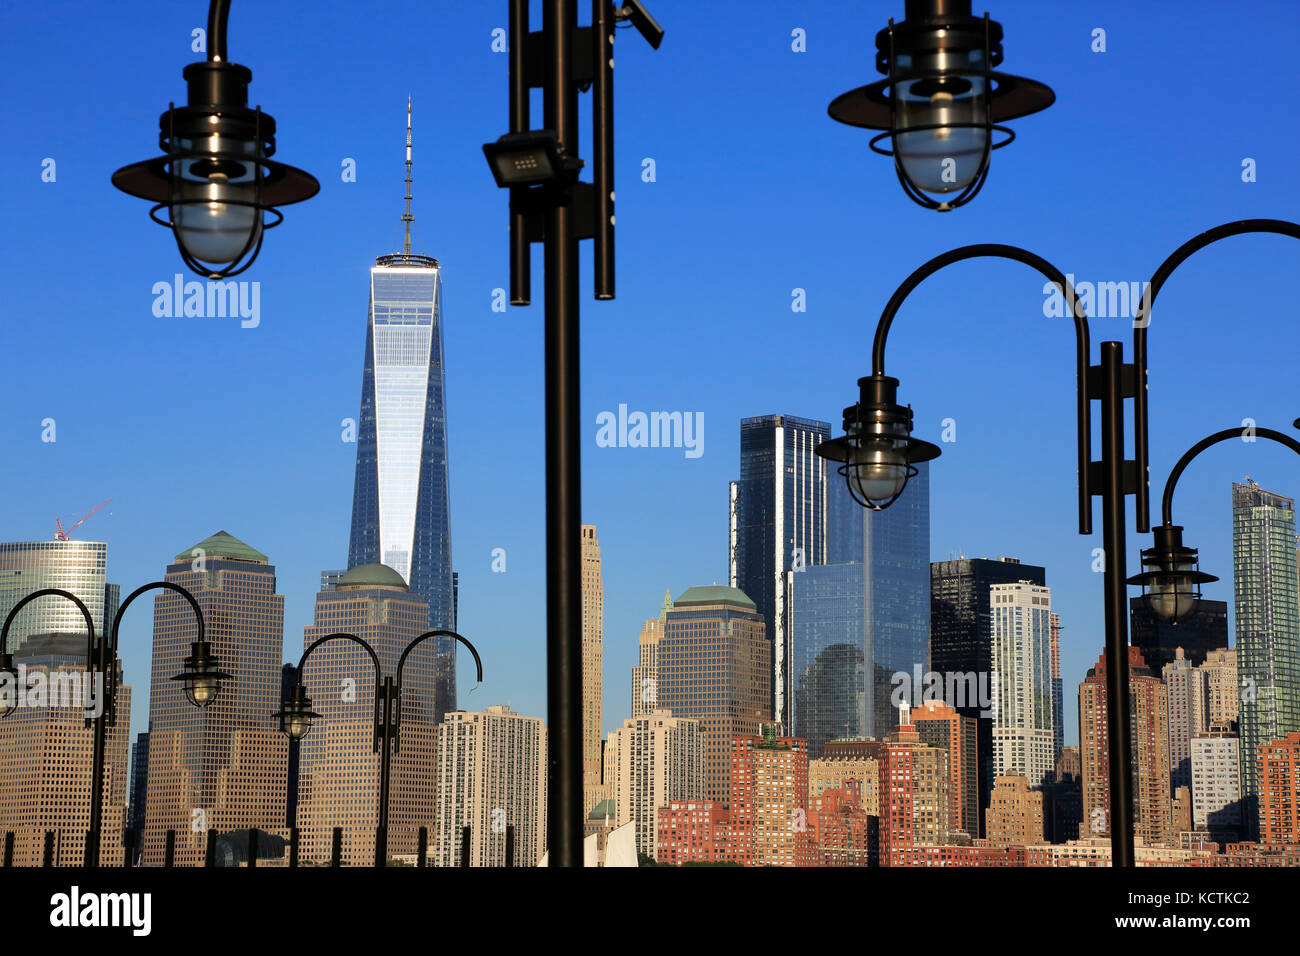 Skyline of Financial District in lower Manhattan with Hudson River and lampposts of old ferry dock of Liberty State - Stock Image